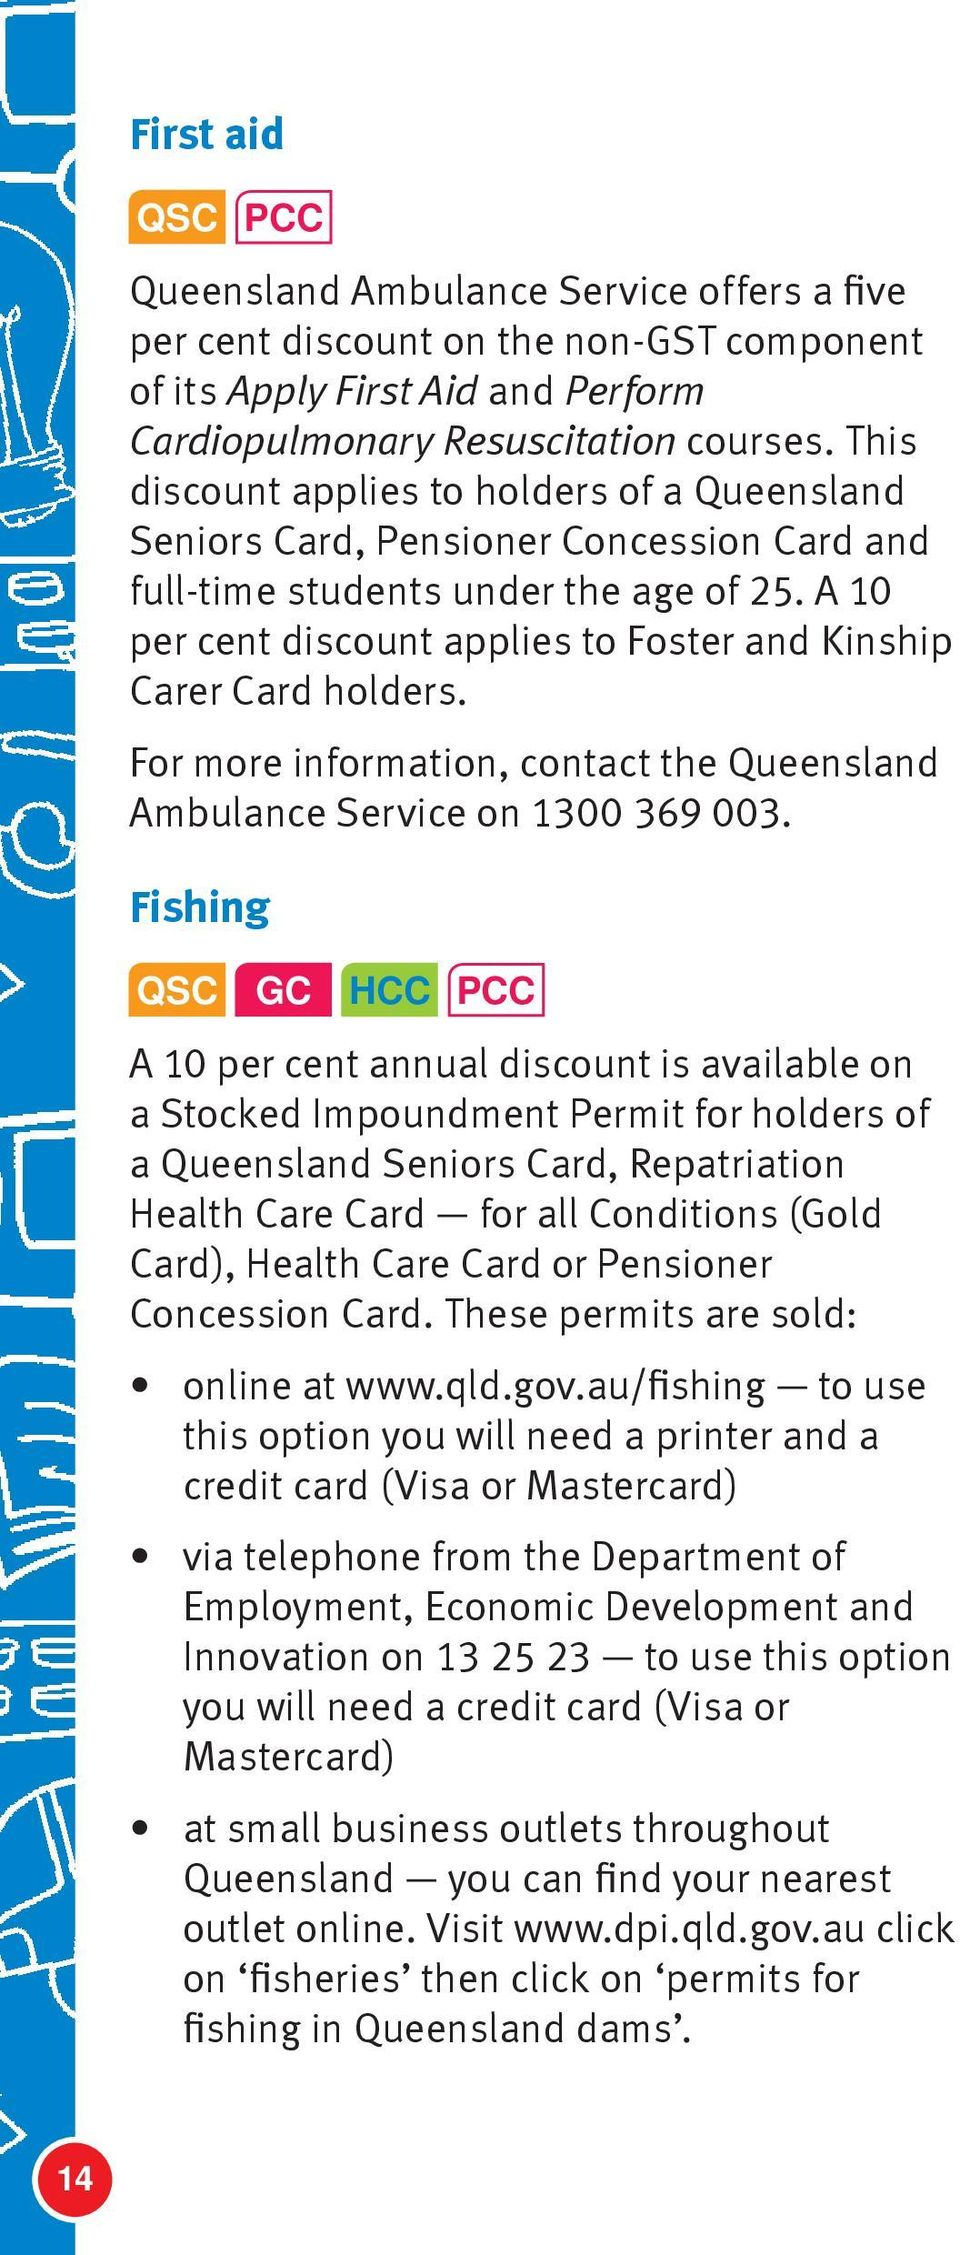 A 10 per cent discount applies to Foster and Kinship Carer Card holders. For more information, contact the Queensland Ambulance Service on 1300 369 003.